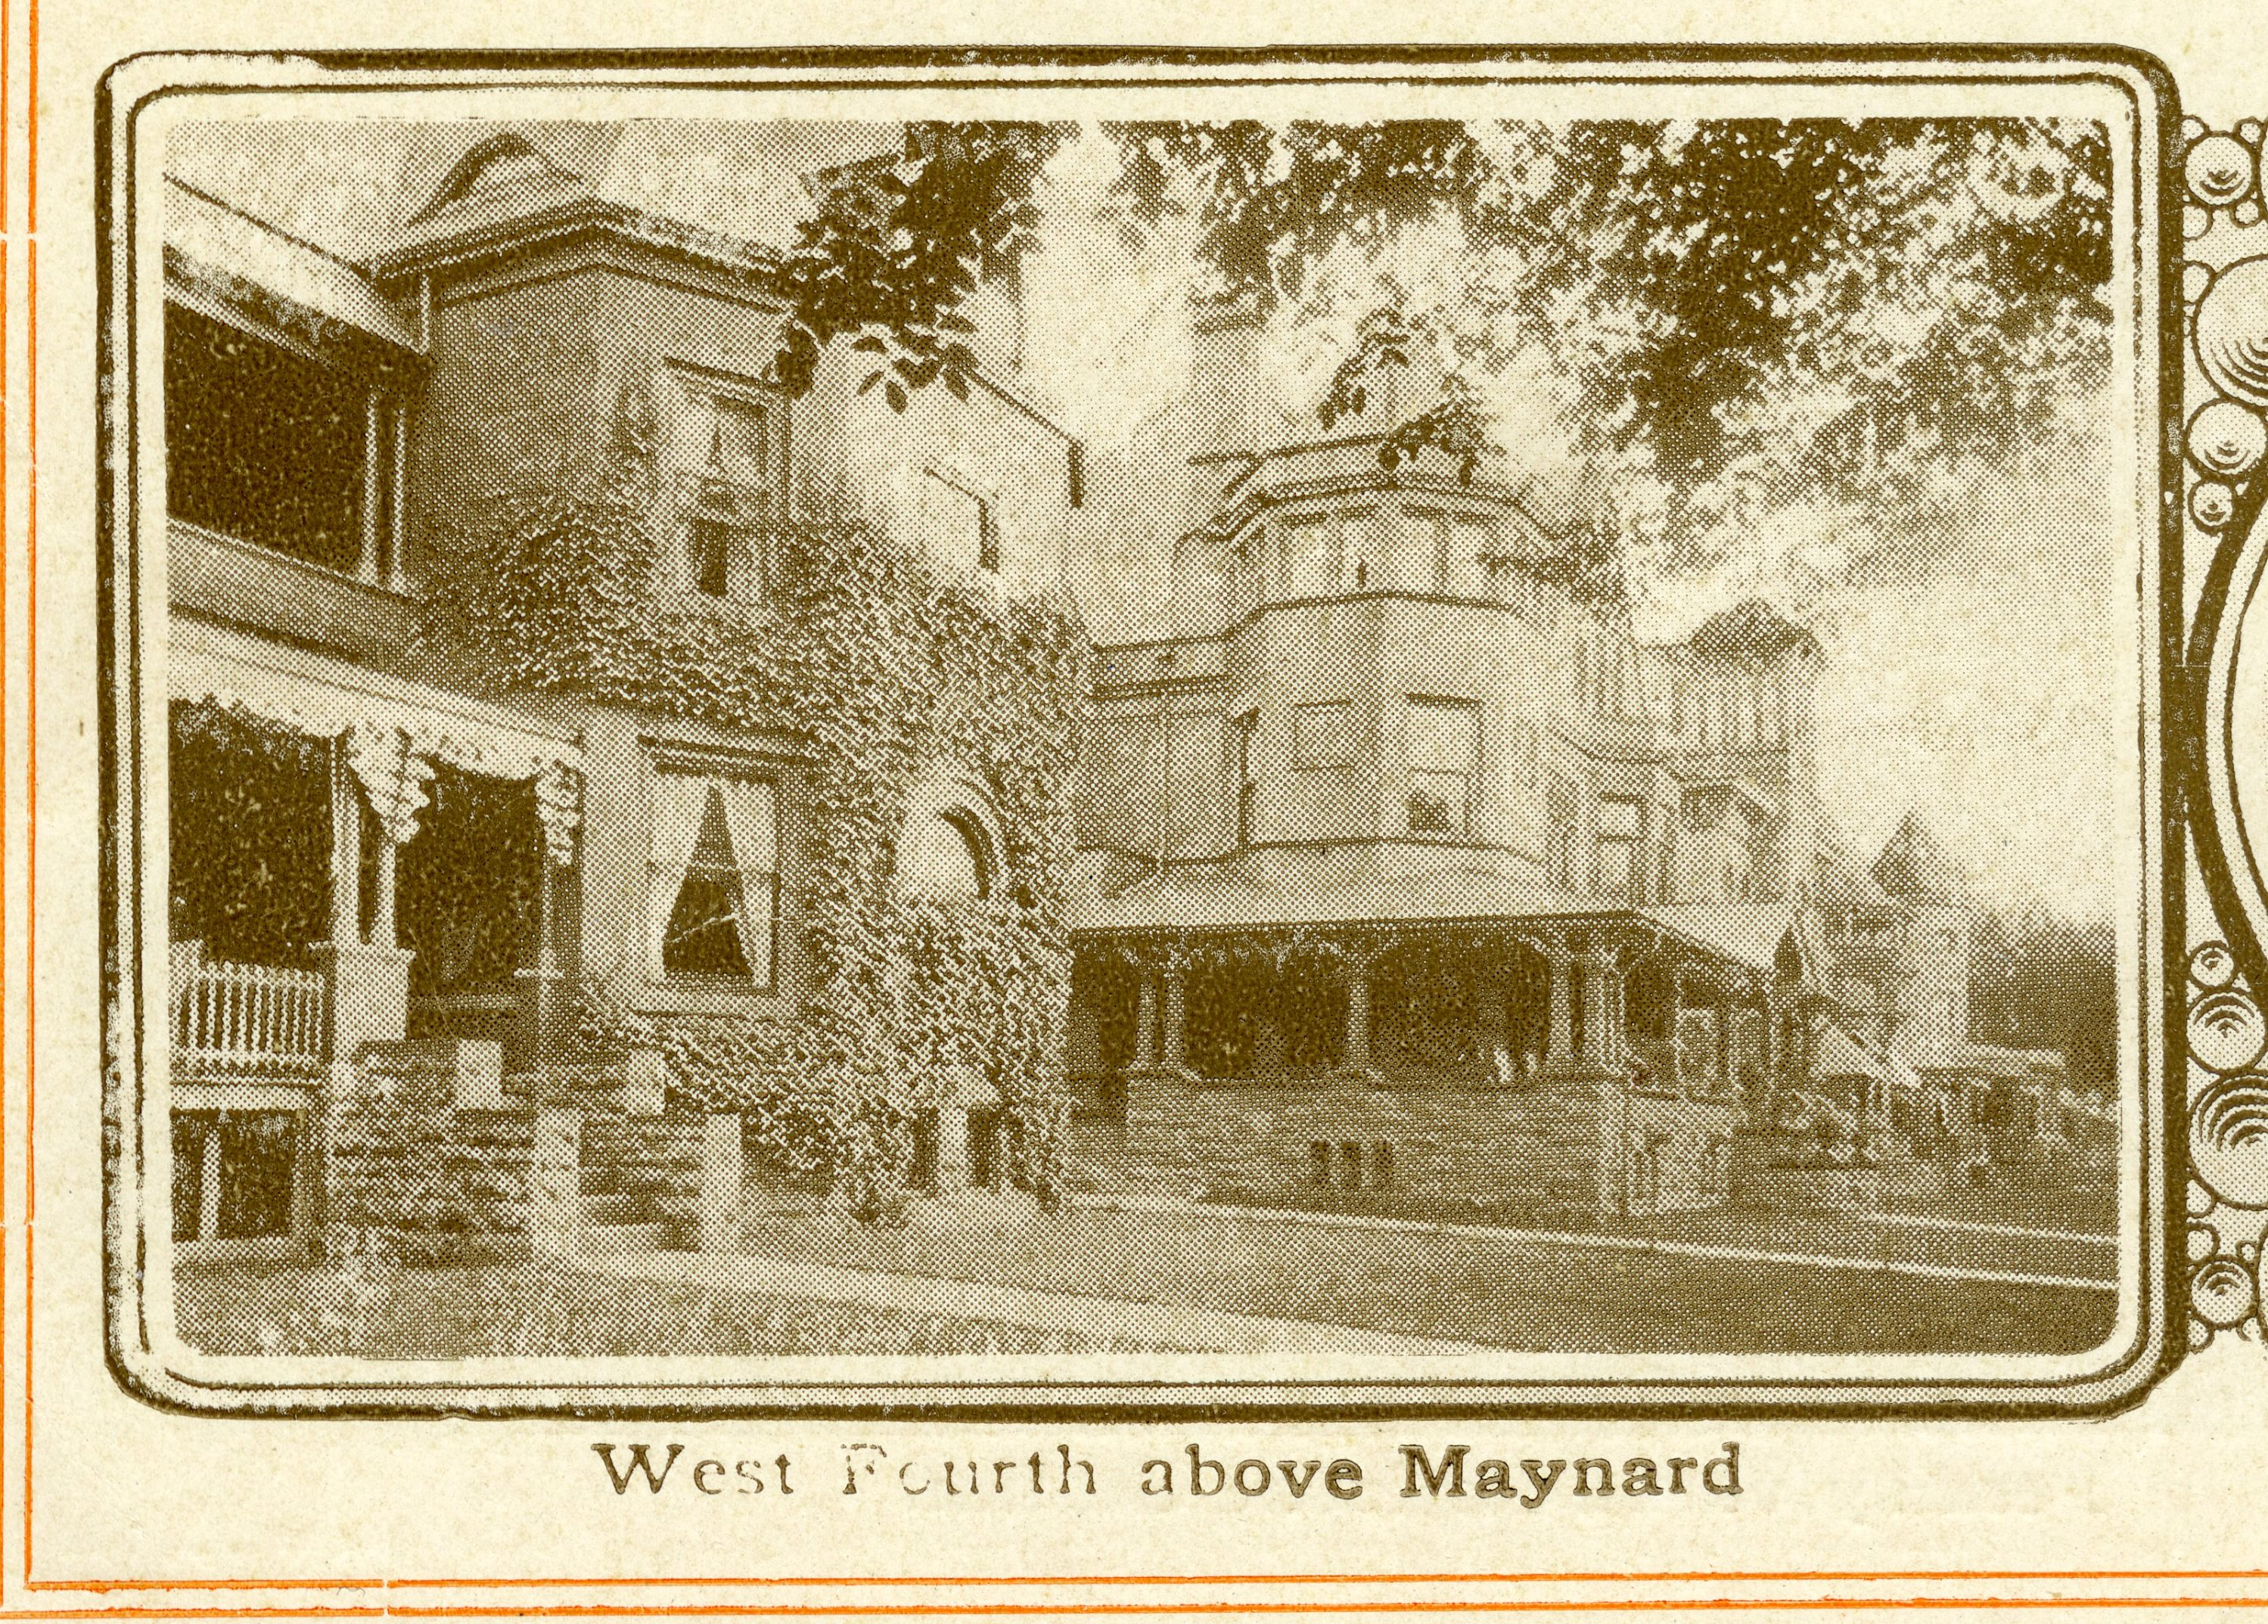 901 West 4th Street feature in Williamsport Brochure (c. 1900)